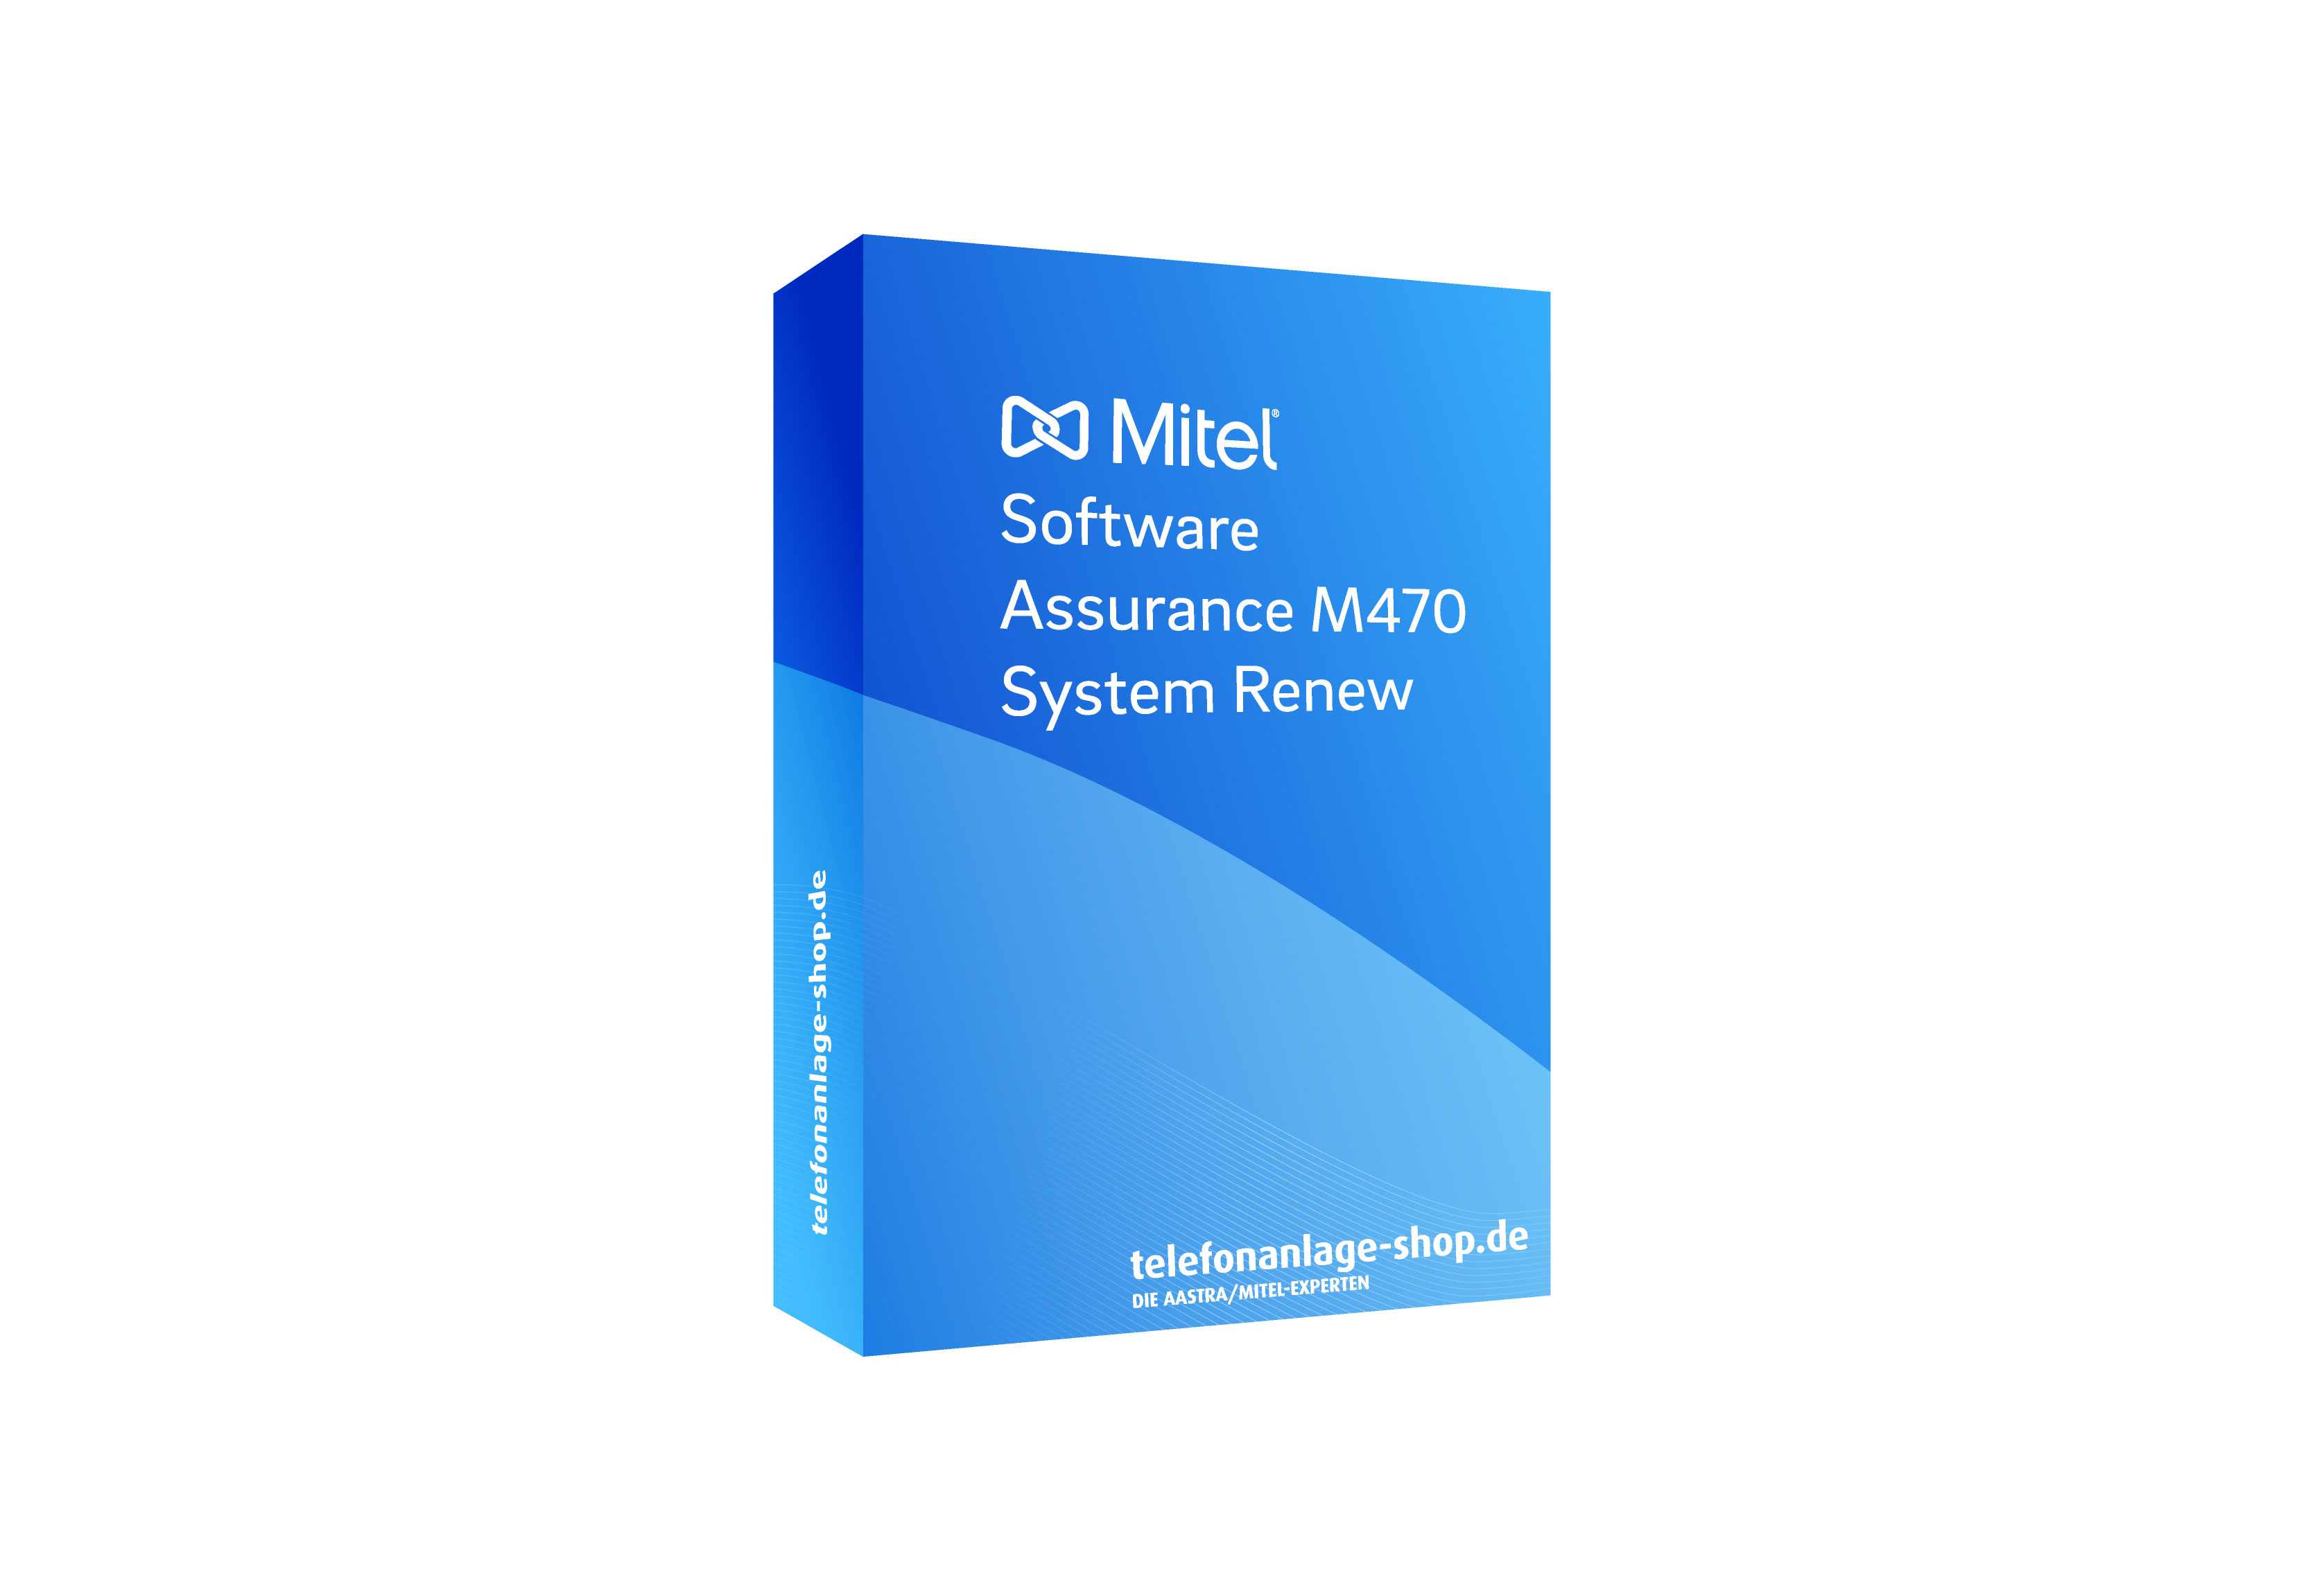 Vollansicht - Mitel Software Assurance M470 System Renew